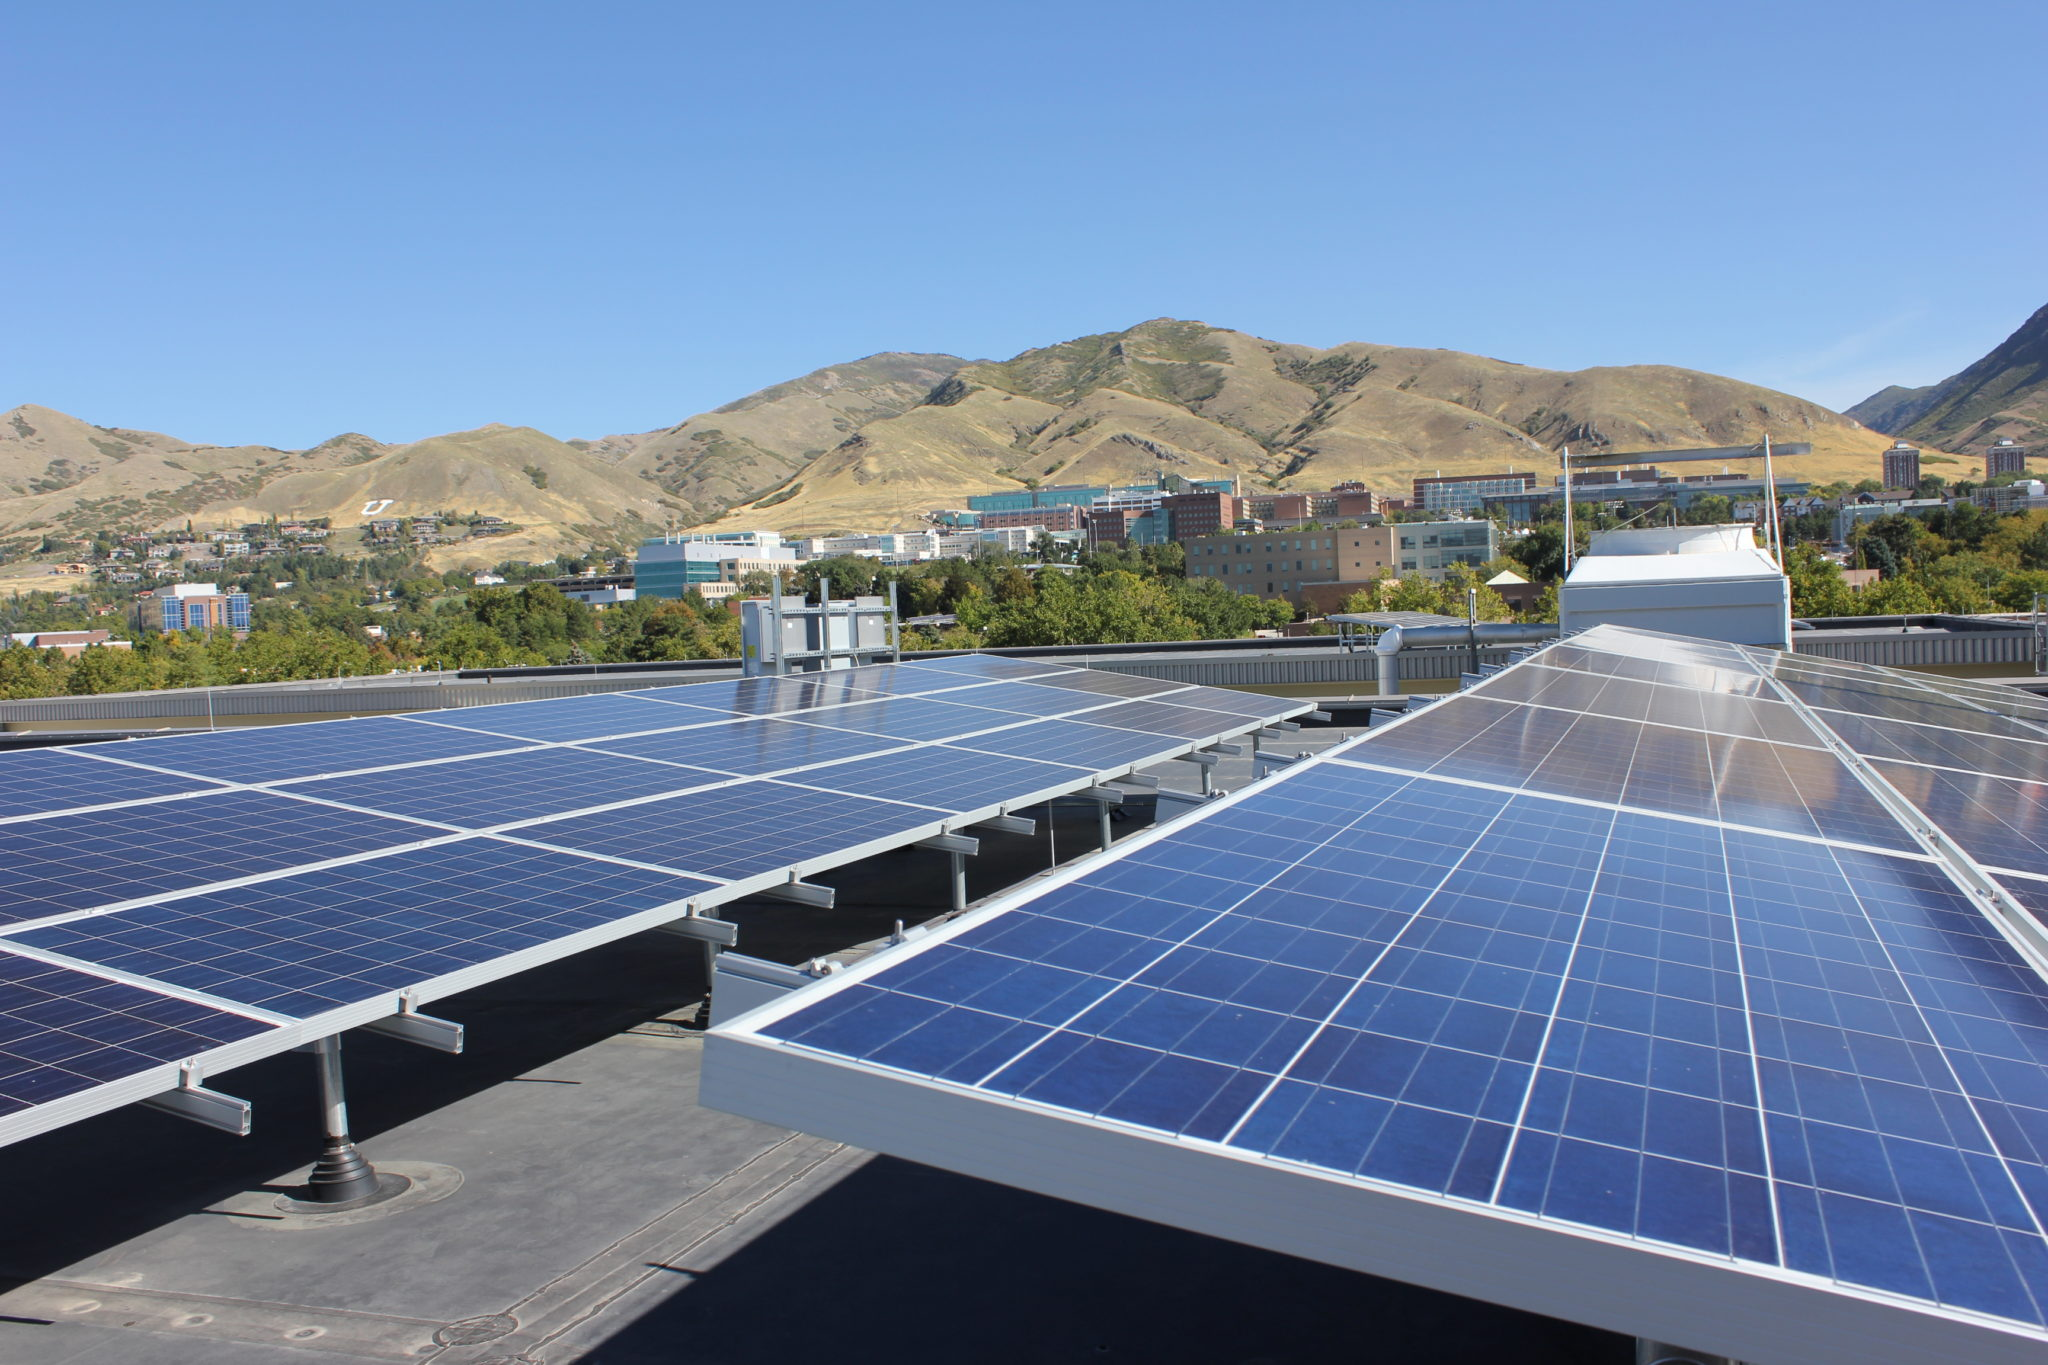 About the Library's Solar Panels